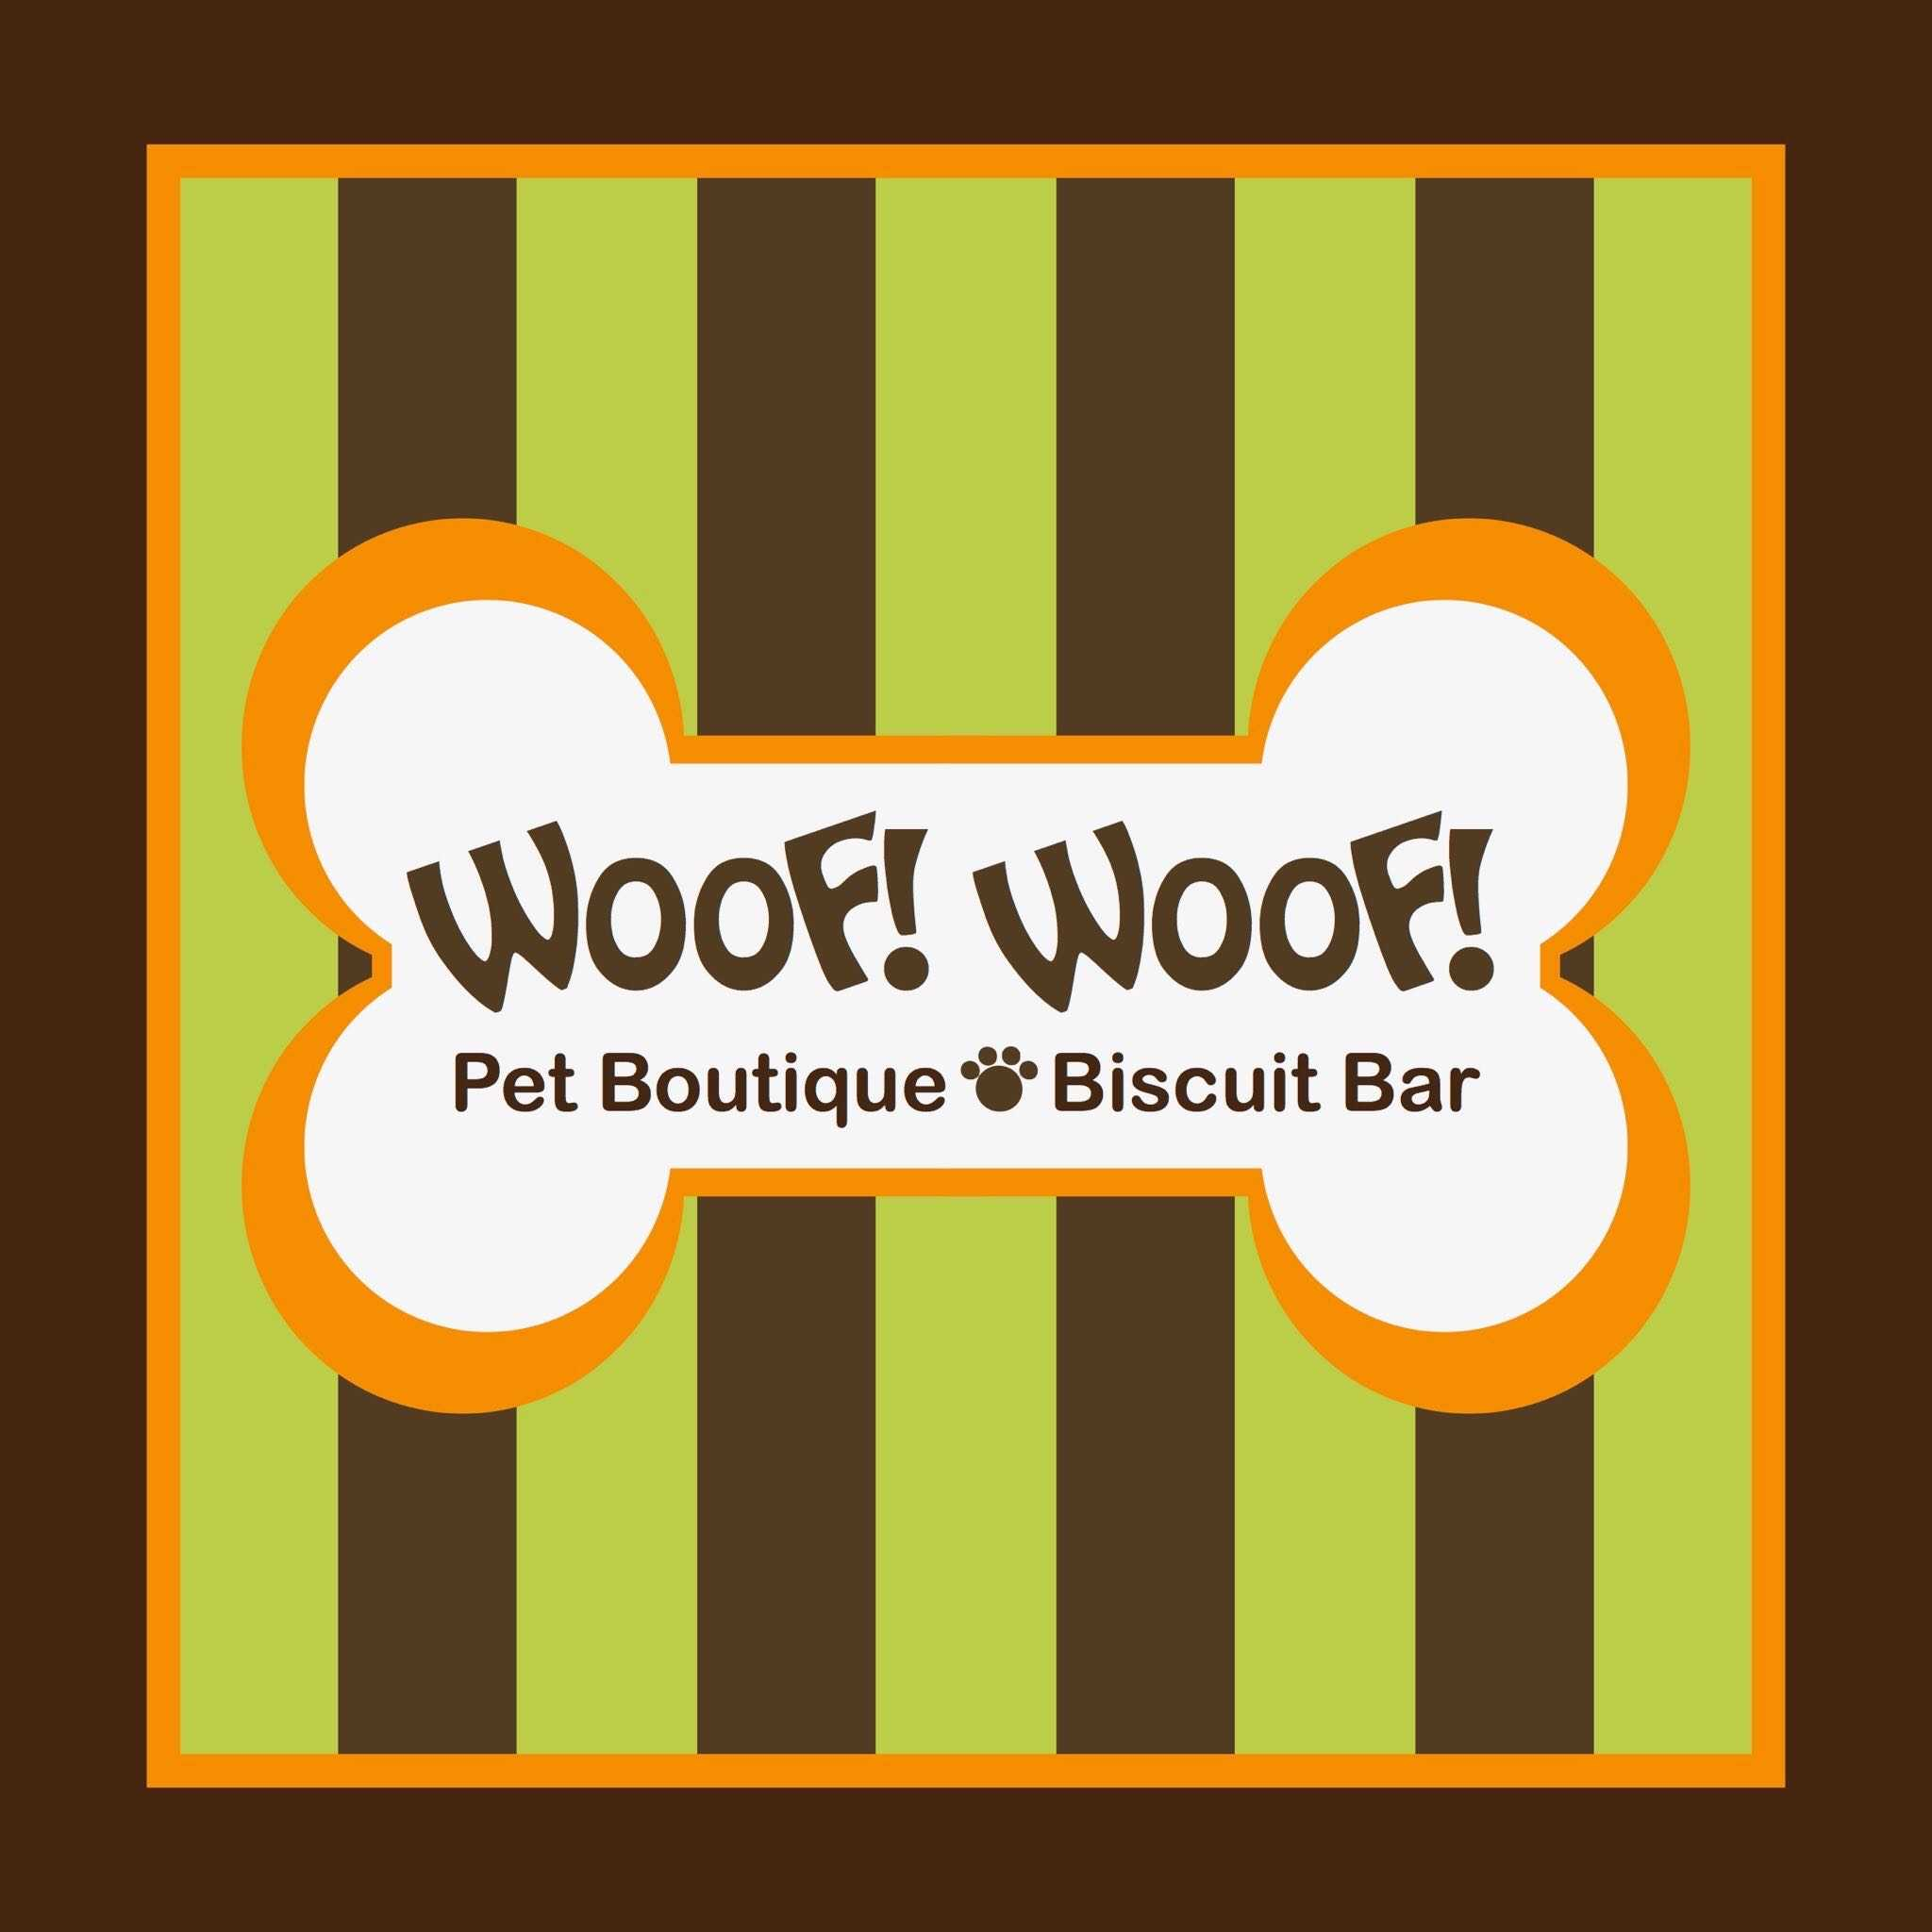 WOOF! WOOF! Pet Boutique & Biscuit Bar New Bedford - New Bedford, MA 02740 - (774)202-7559   ShowMeLocal.com